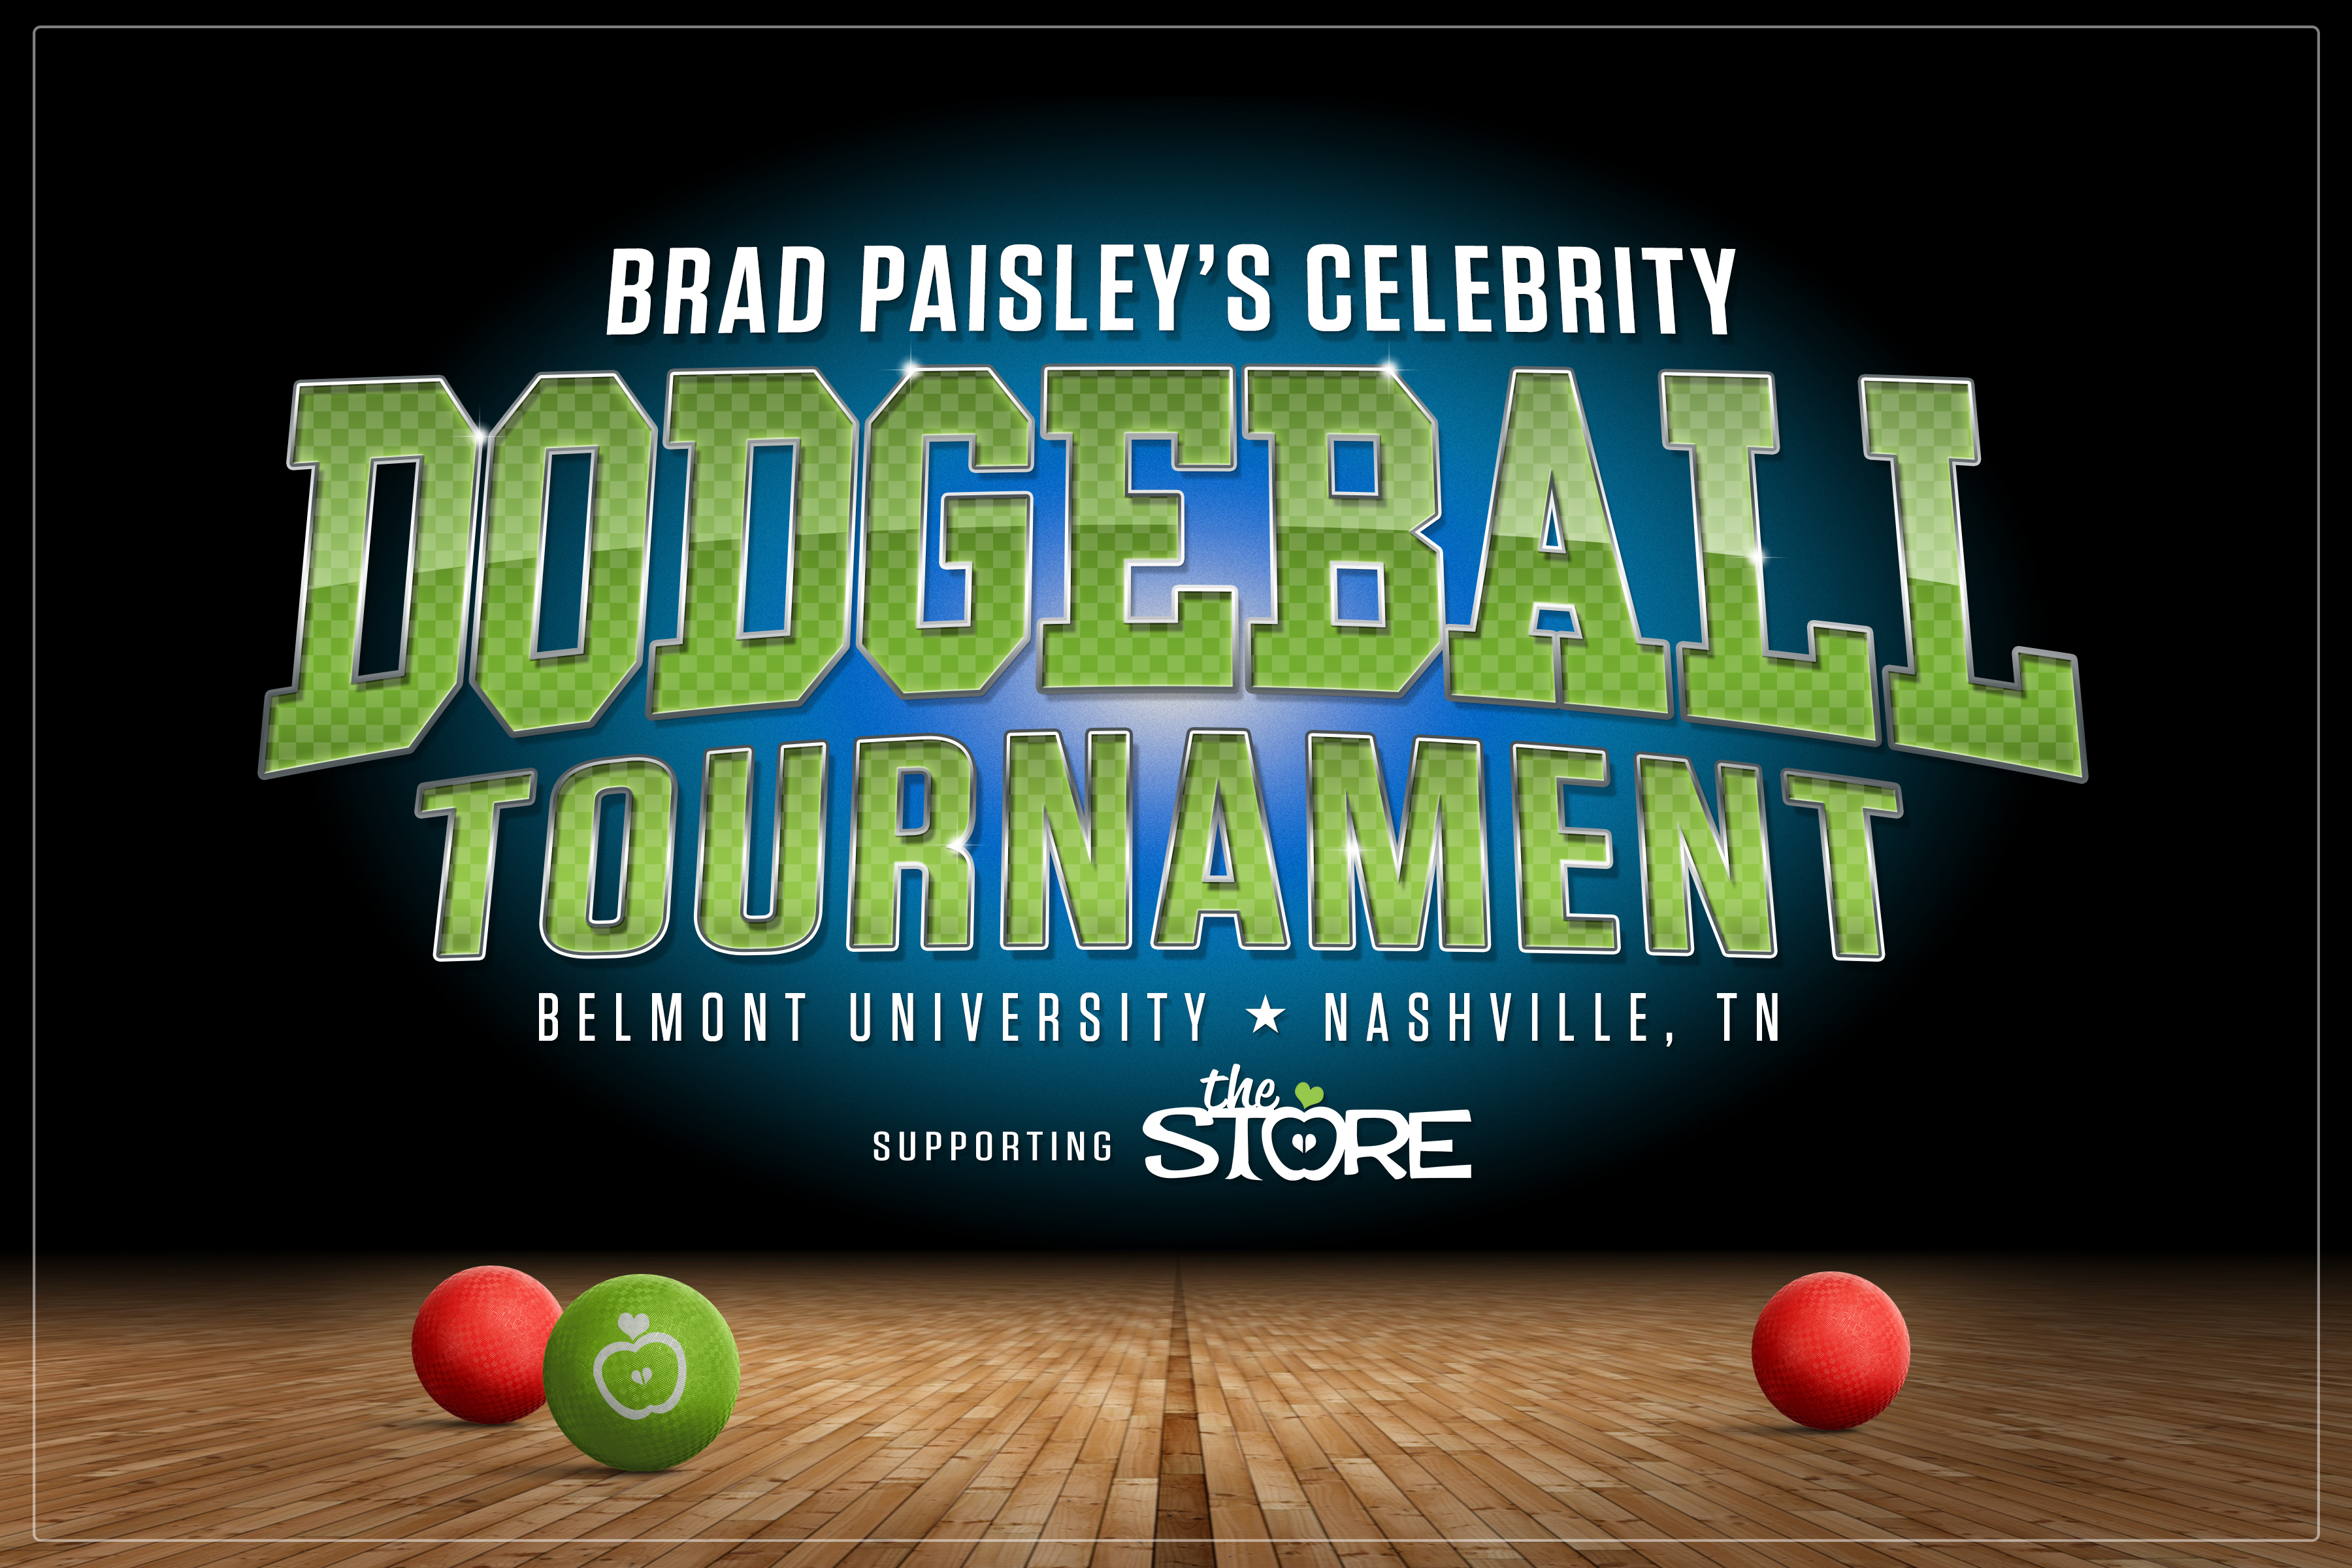 Brad Paisley Announces Celebrity Dodgeball Tournament to Benefit Nonprofit The Store